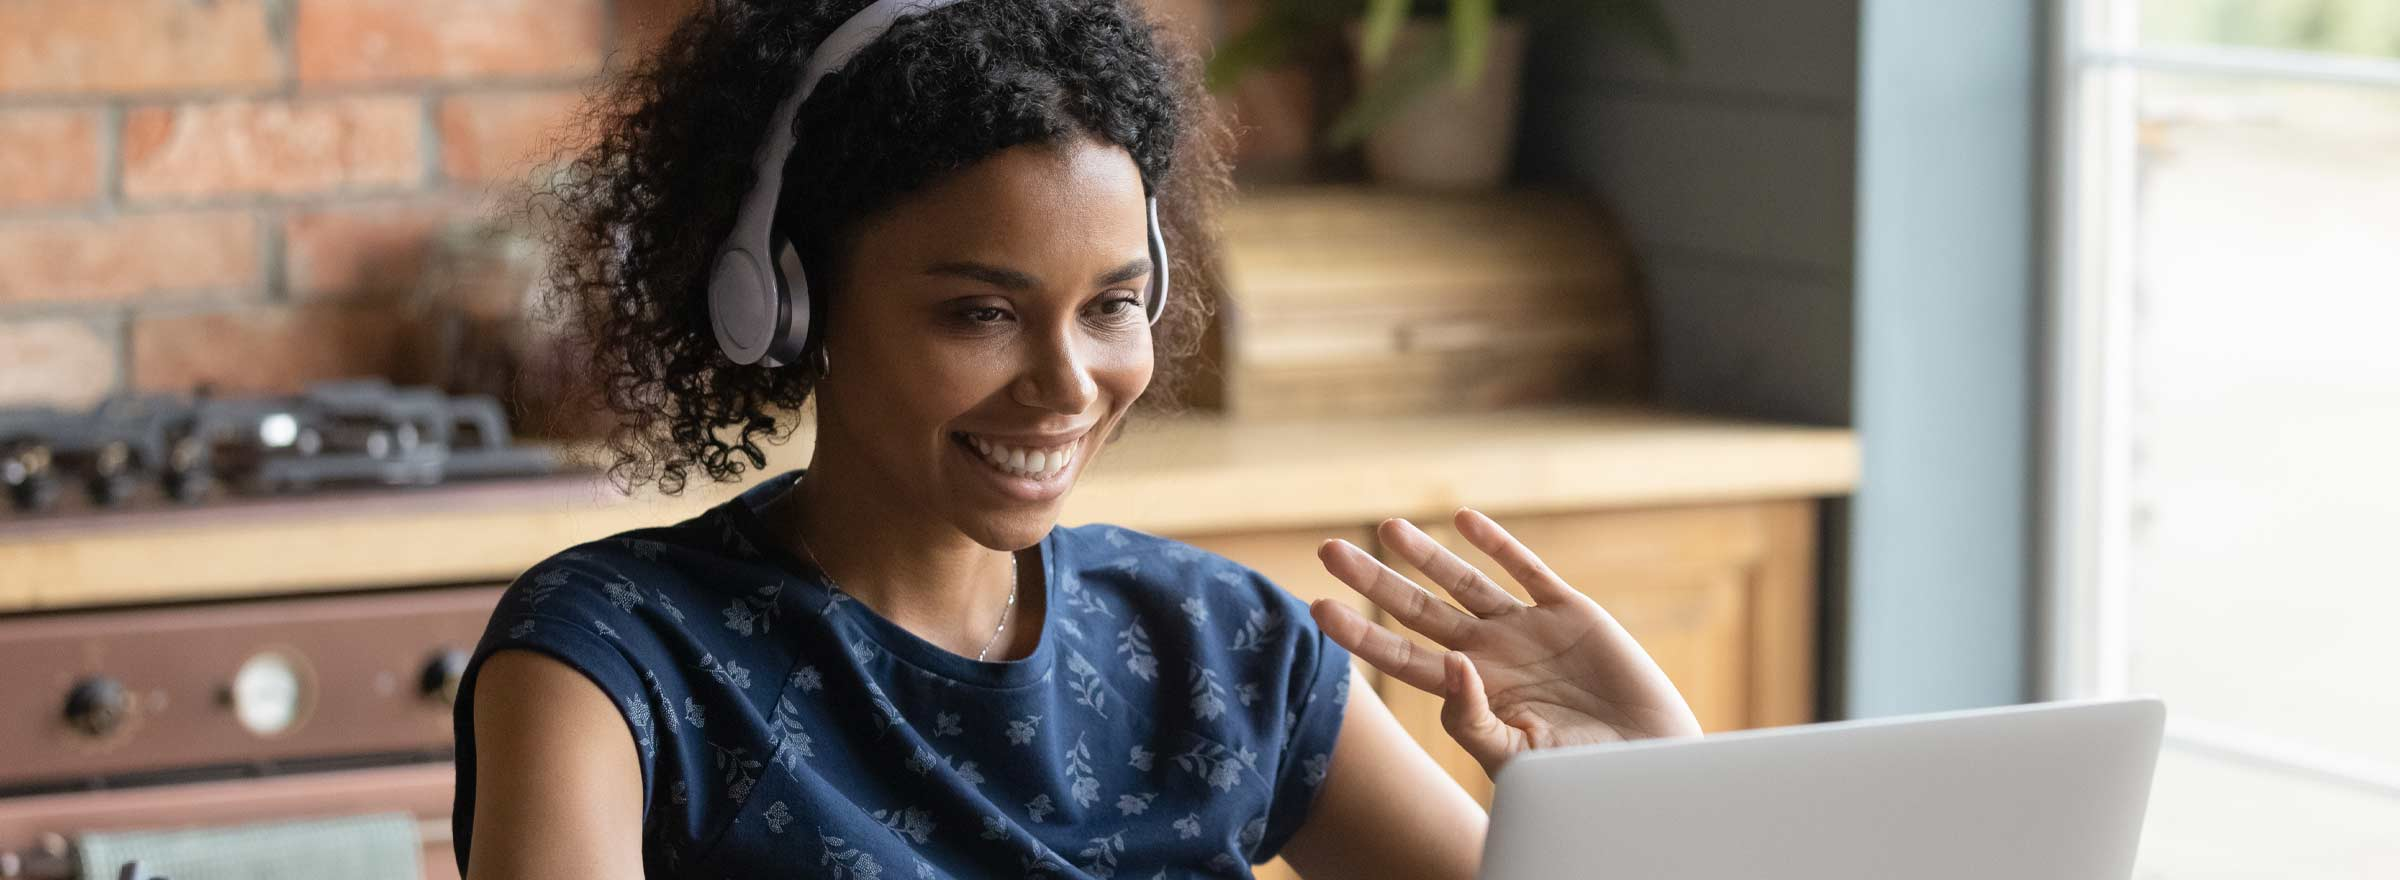 woman in headset waving at a computer screen